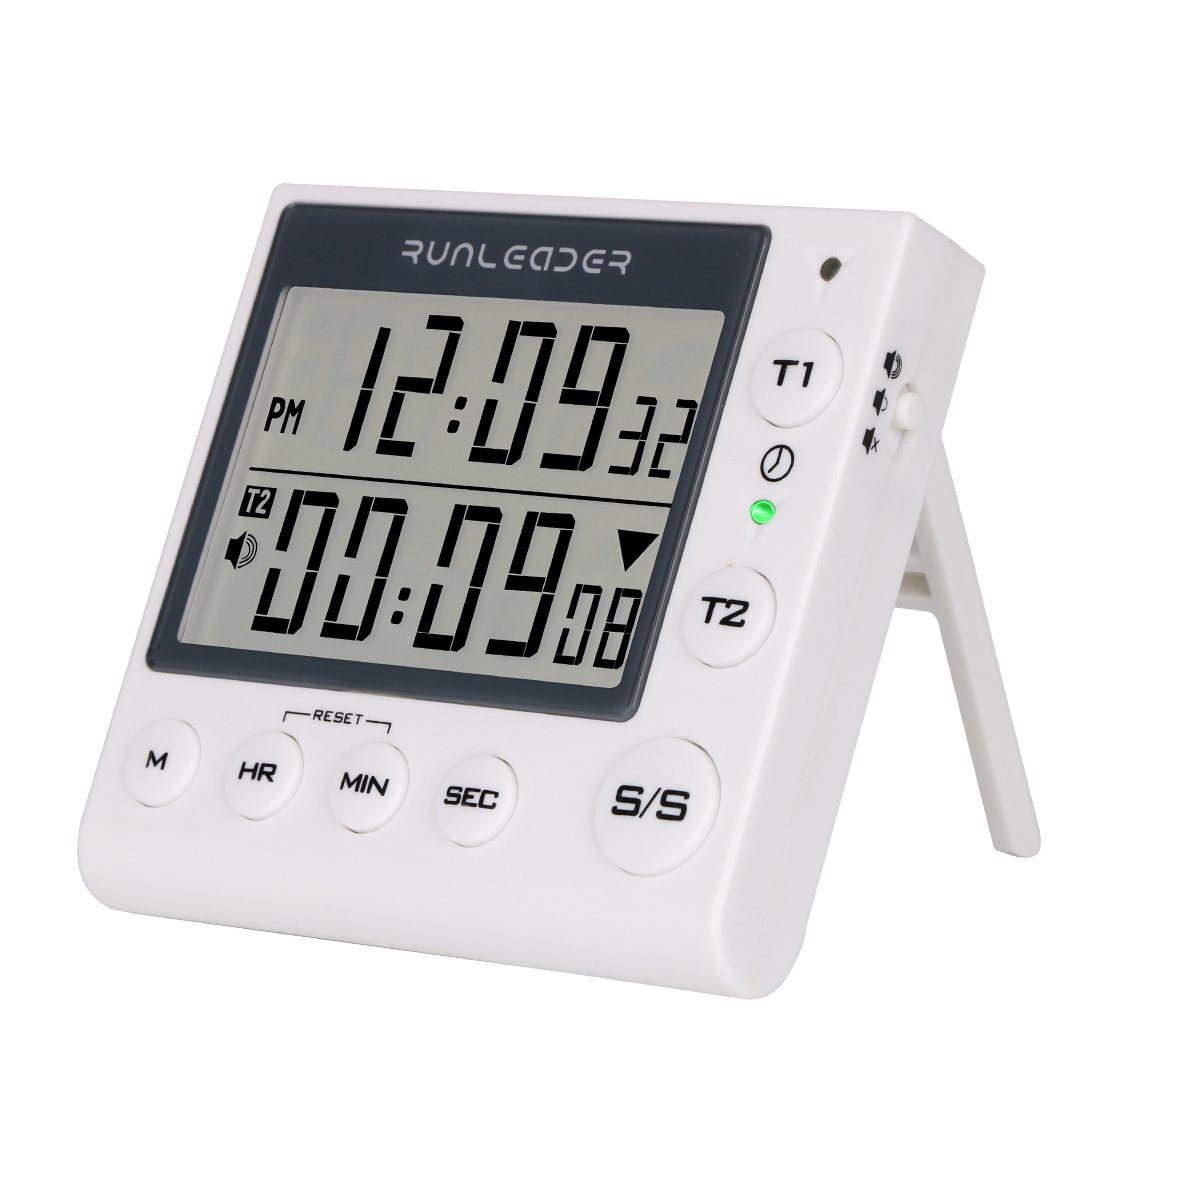 Dual Digital Count Up Down Timer - AIMILAR 2-Channel Countdown Kitchen Timer Clock for Cooking Lab Homework Exercise Gym Sports Games Classroom